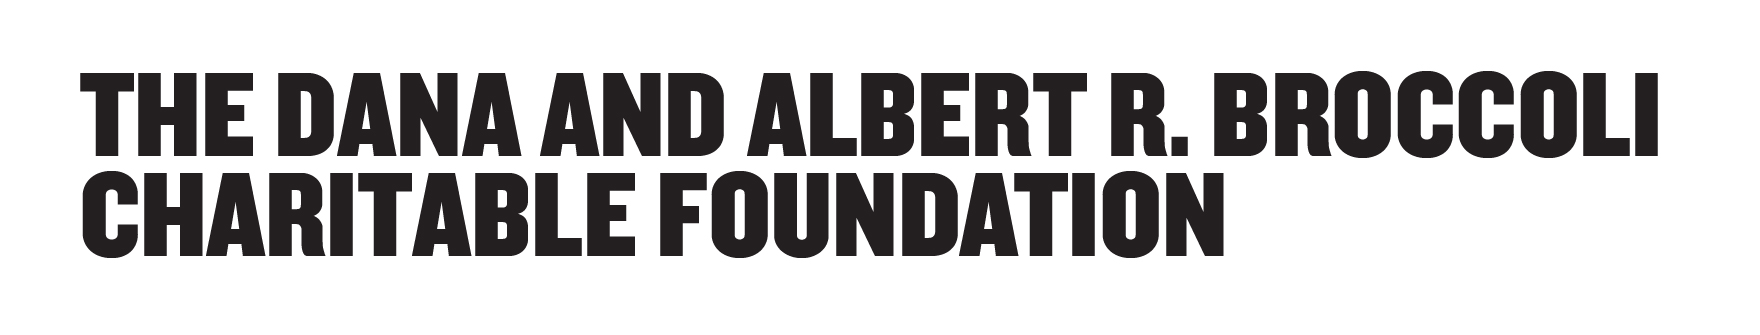 The Dana and Albert R. Broccoli Charitable Foundation